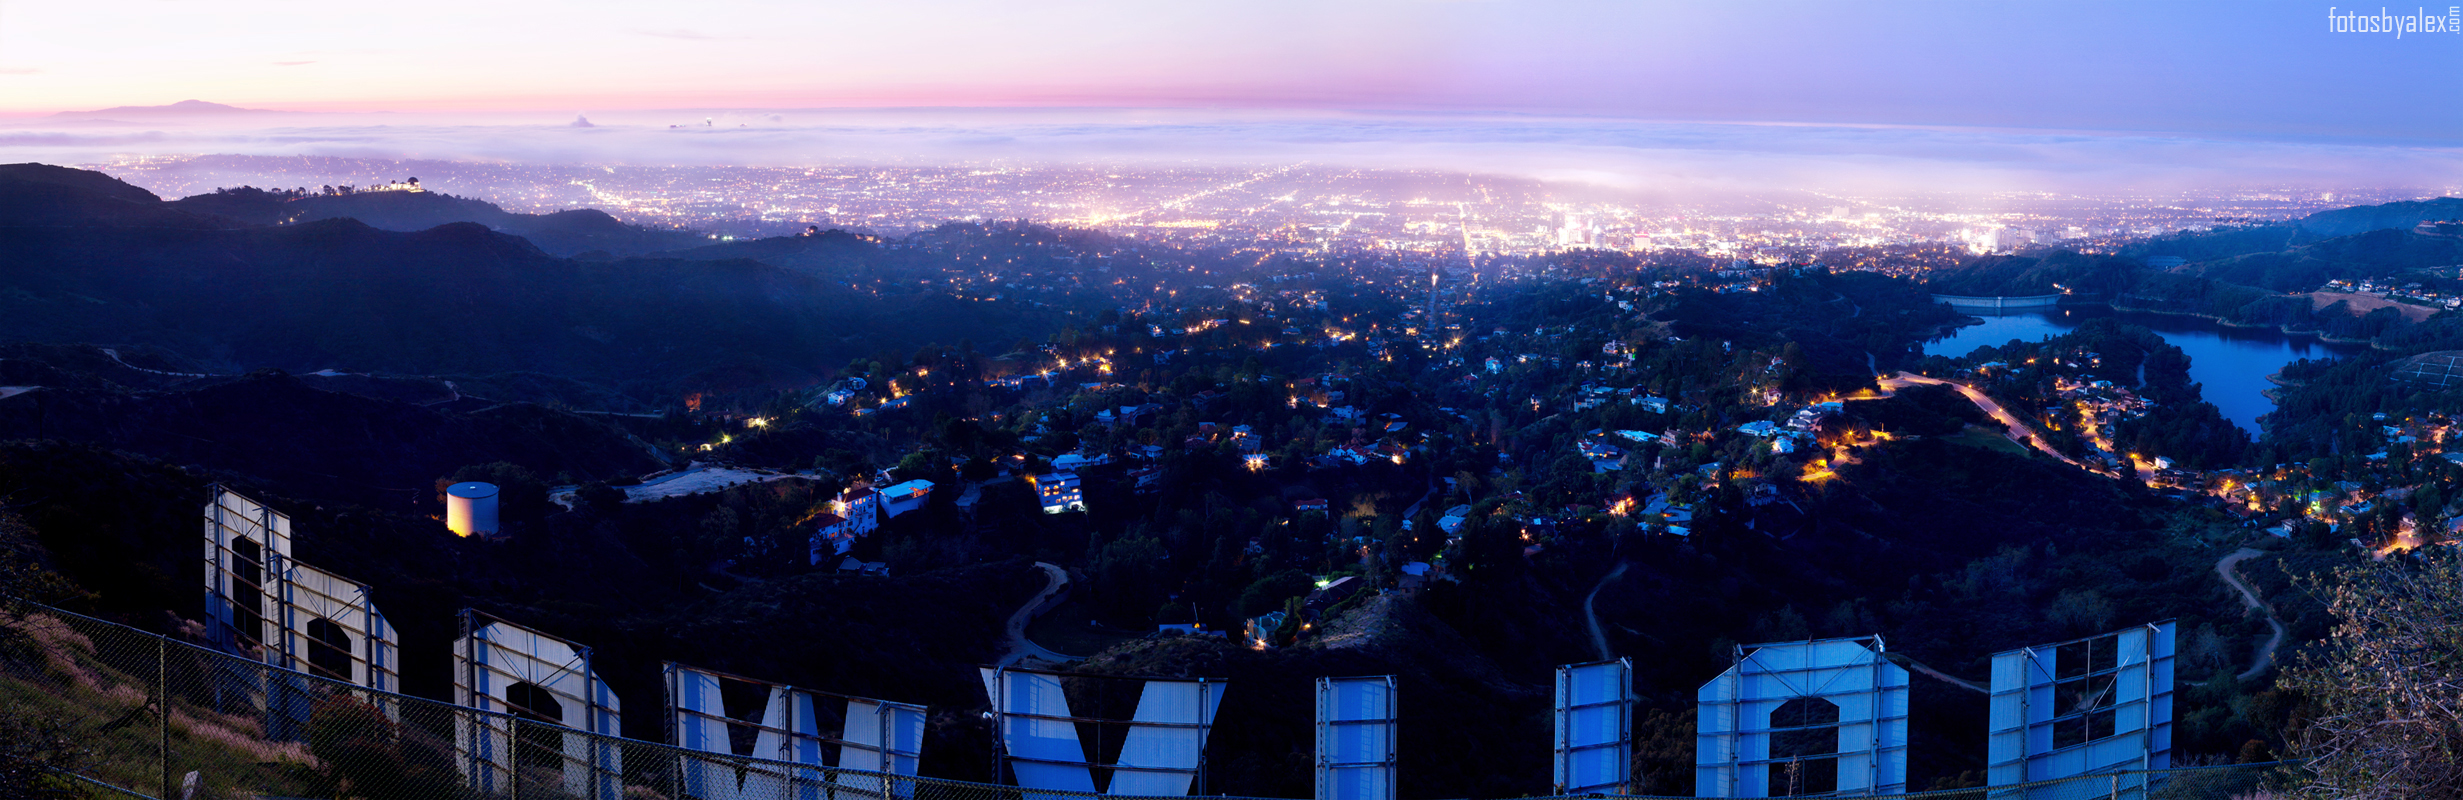 Sunrise La Los Angeles Hollywood Hollywoodsign Griffithobservatory Hollywoodhills Marinelayer Downtownlosangeles Lakehollywood Canon35l Canon7d Fotosbyalex